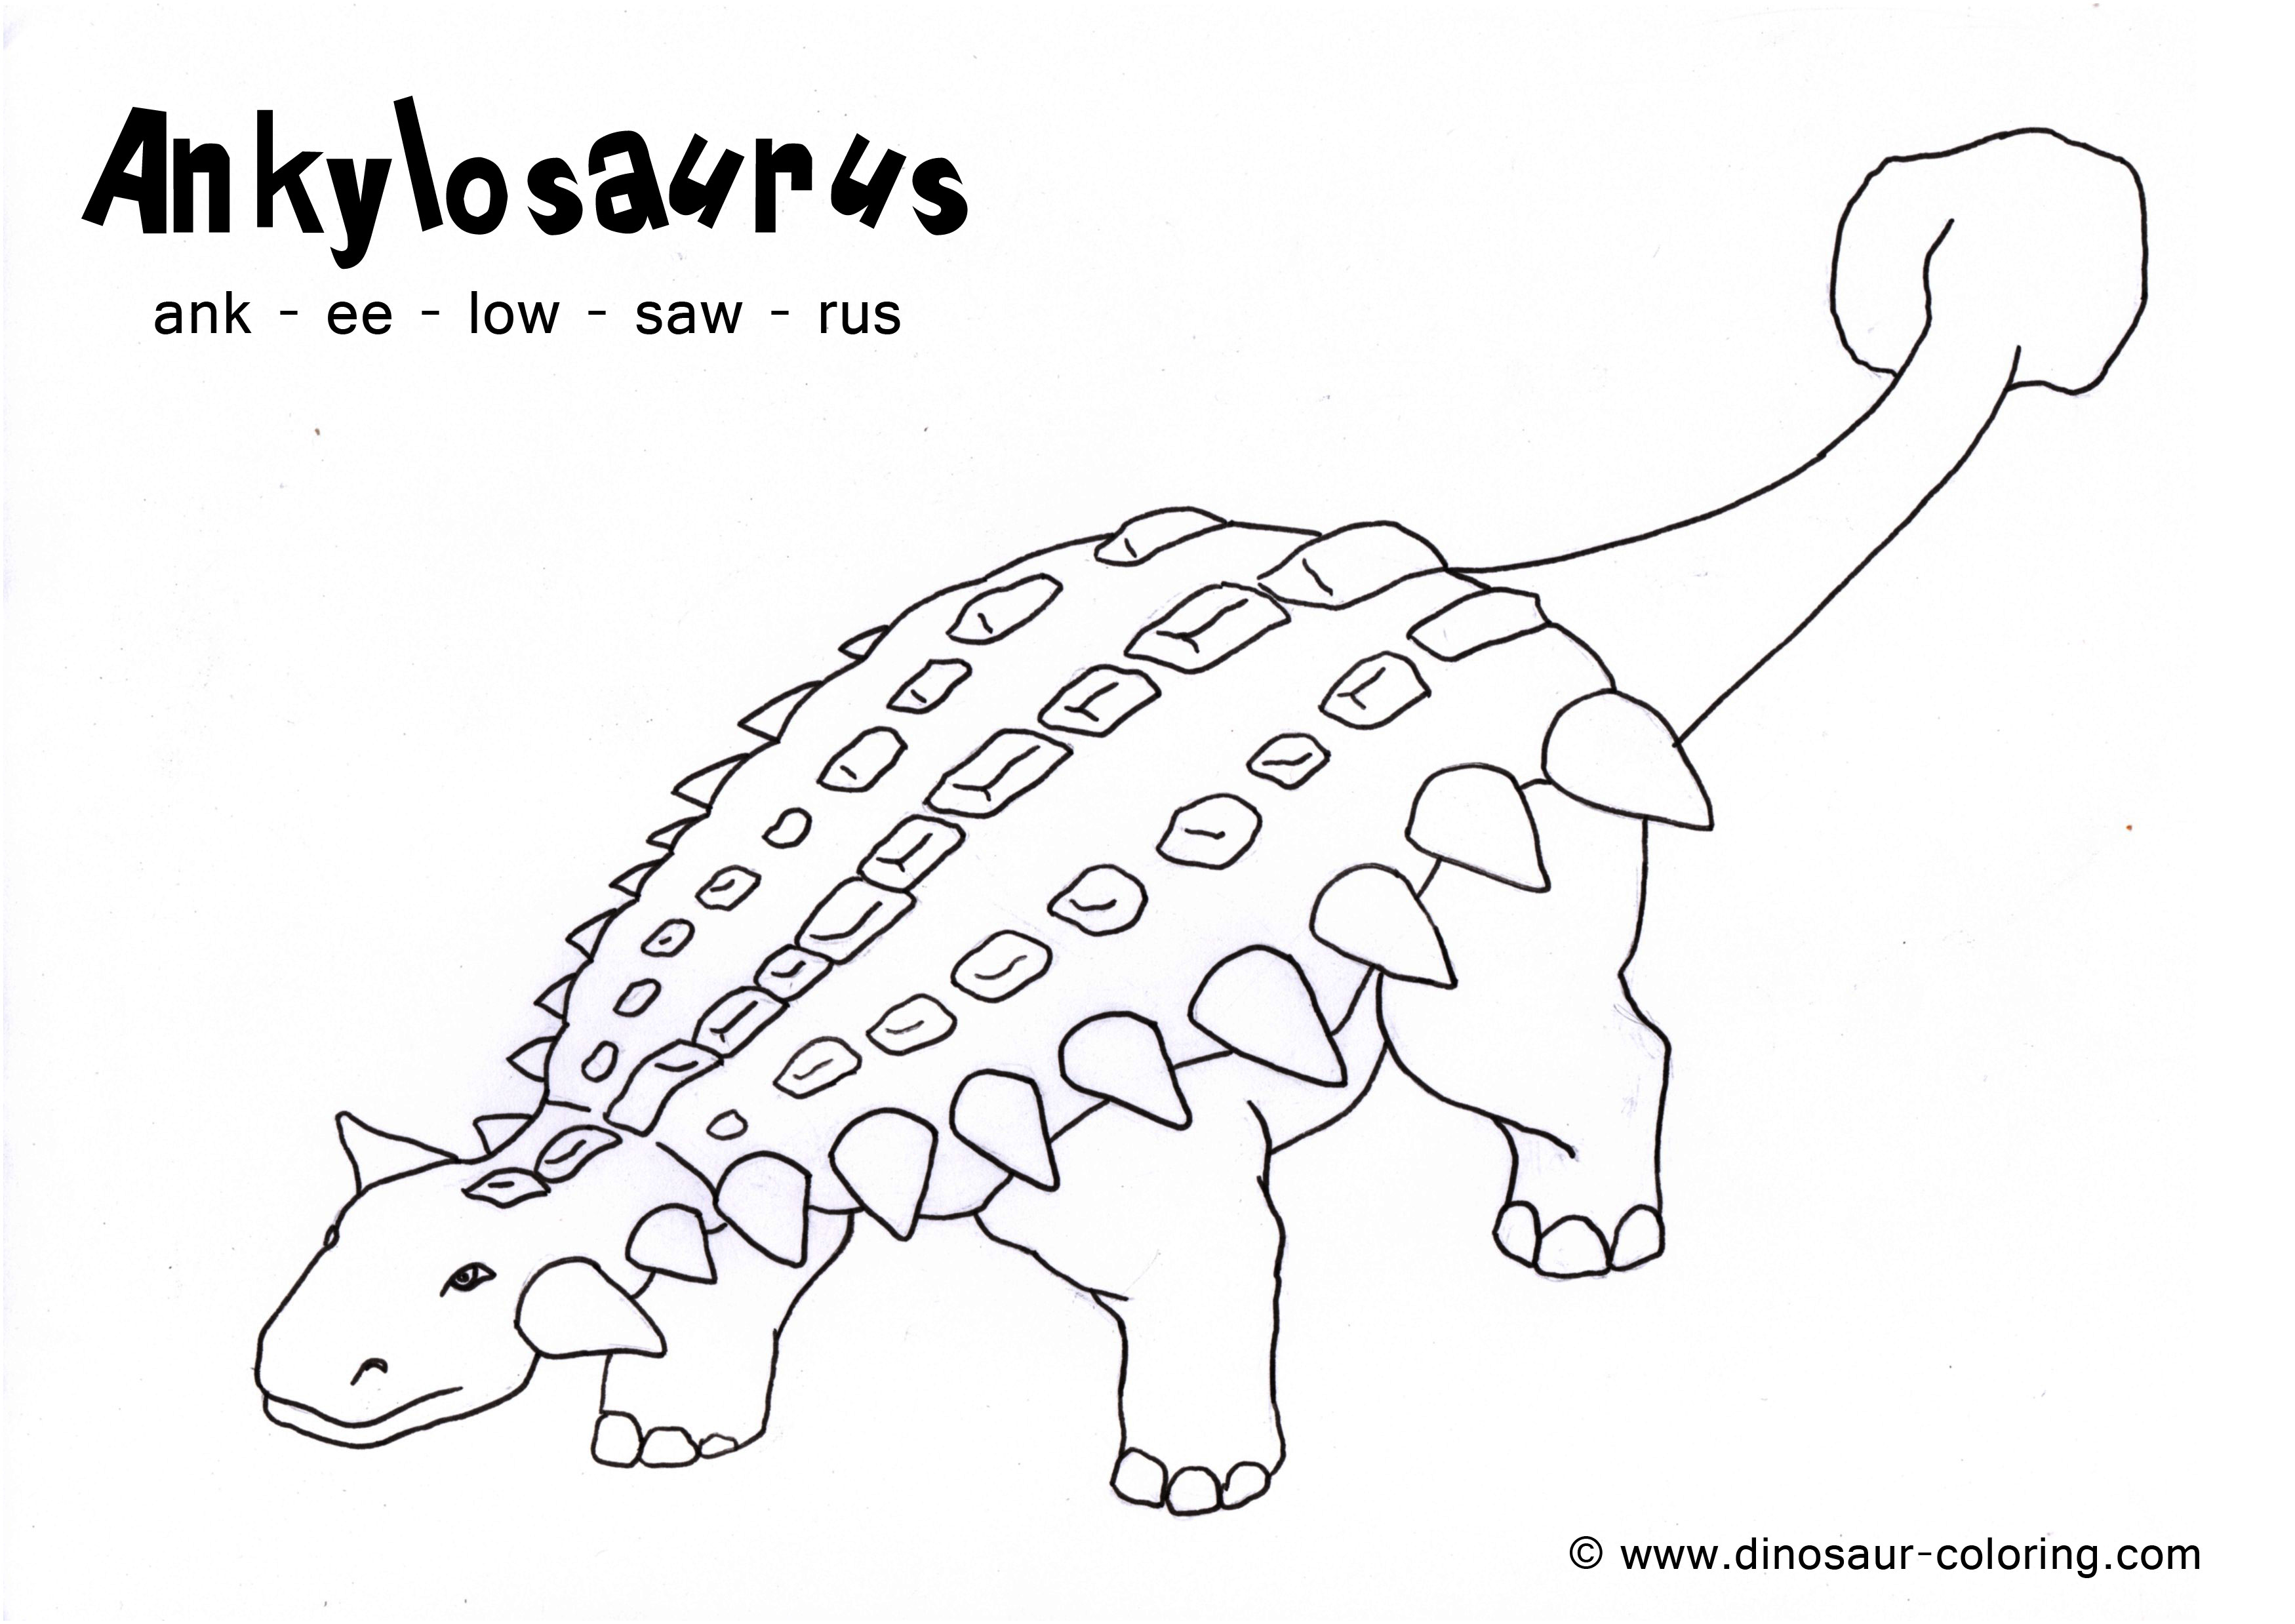 ankylosaurus coloring - Dinosaur Coloring Pages Realistic